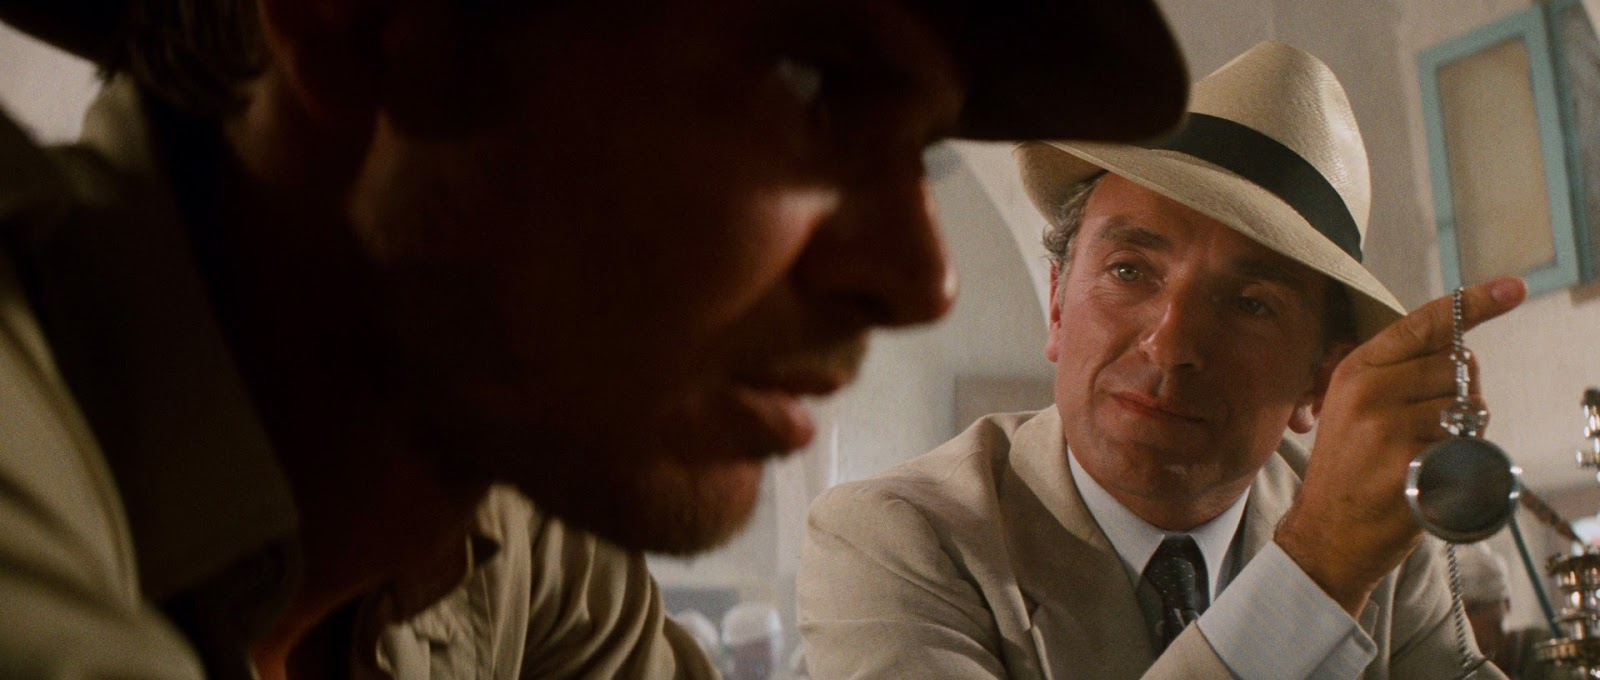 the cathode ray mission screenshots raiders of the lost ark 1981 it s not the years honey it s the mileage